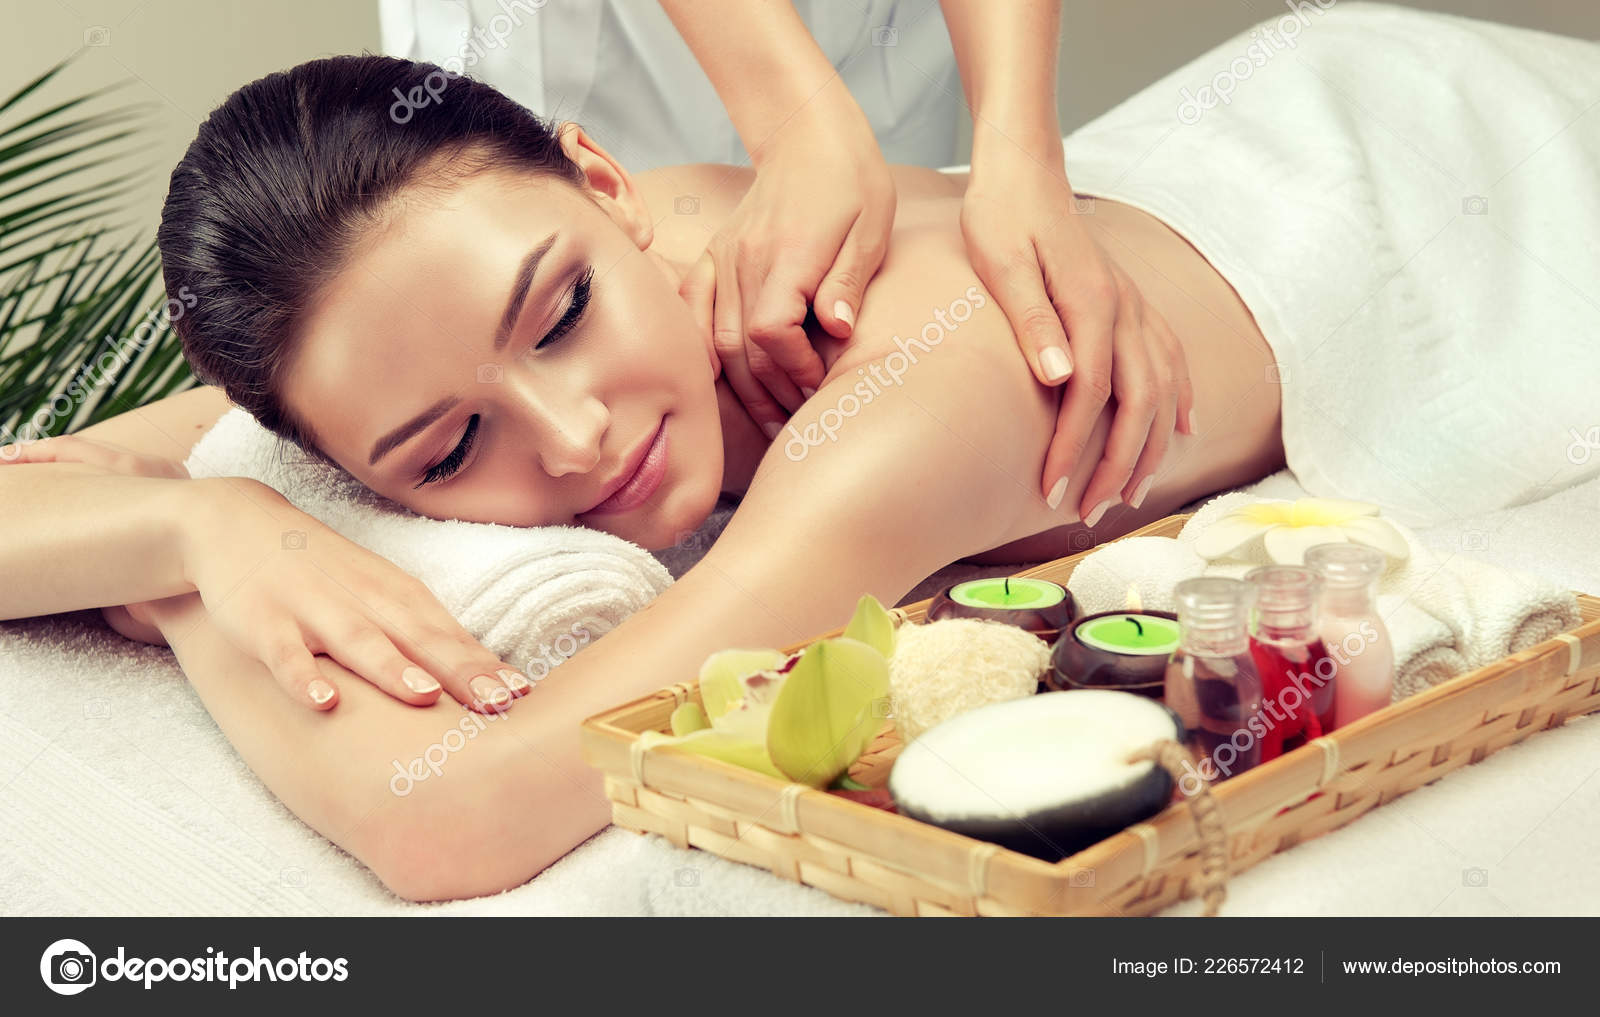 Salon Massage Body Body Massage Body Care Spa Body Massage Woman Hands Treatment